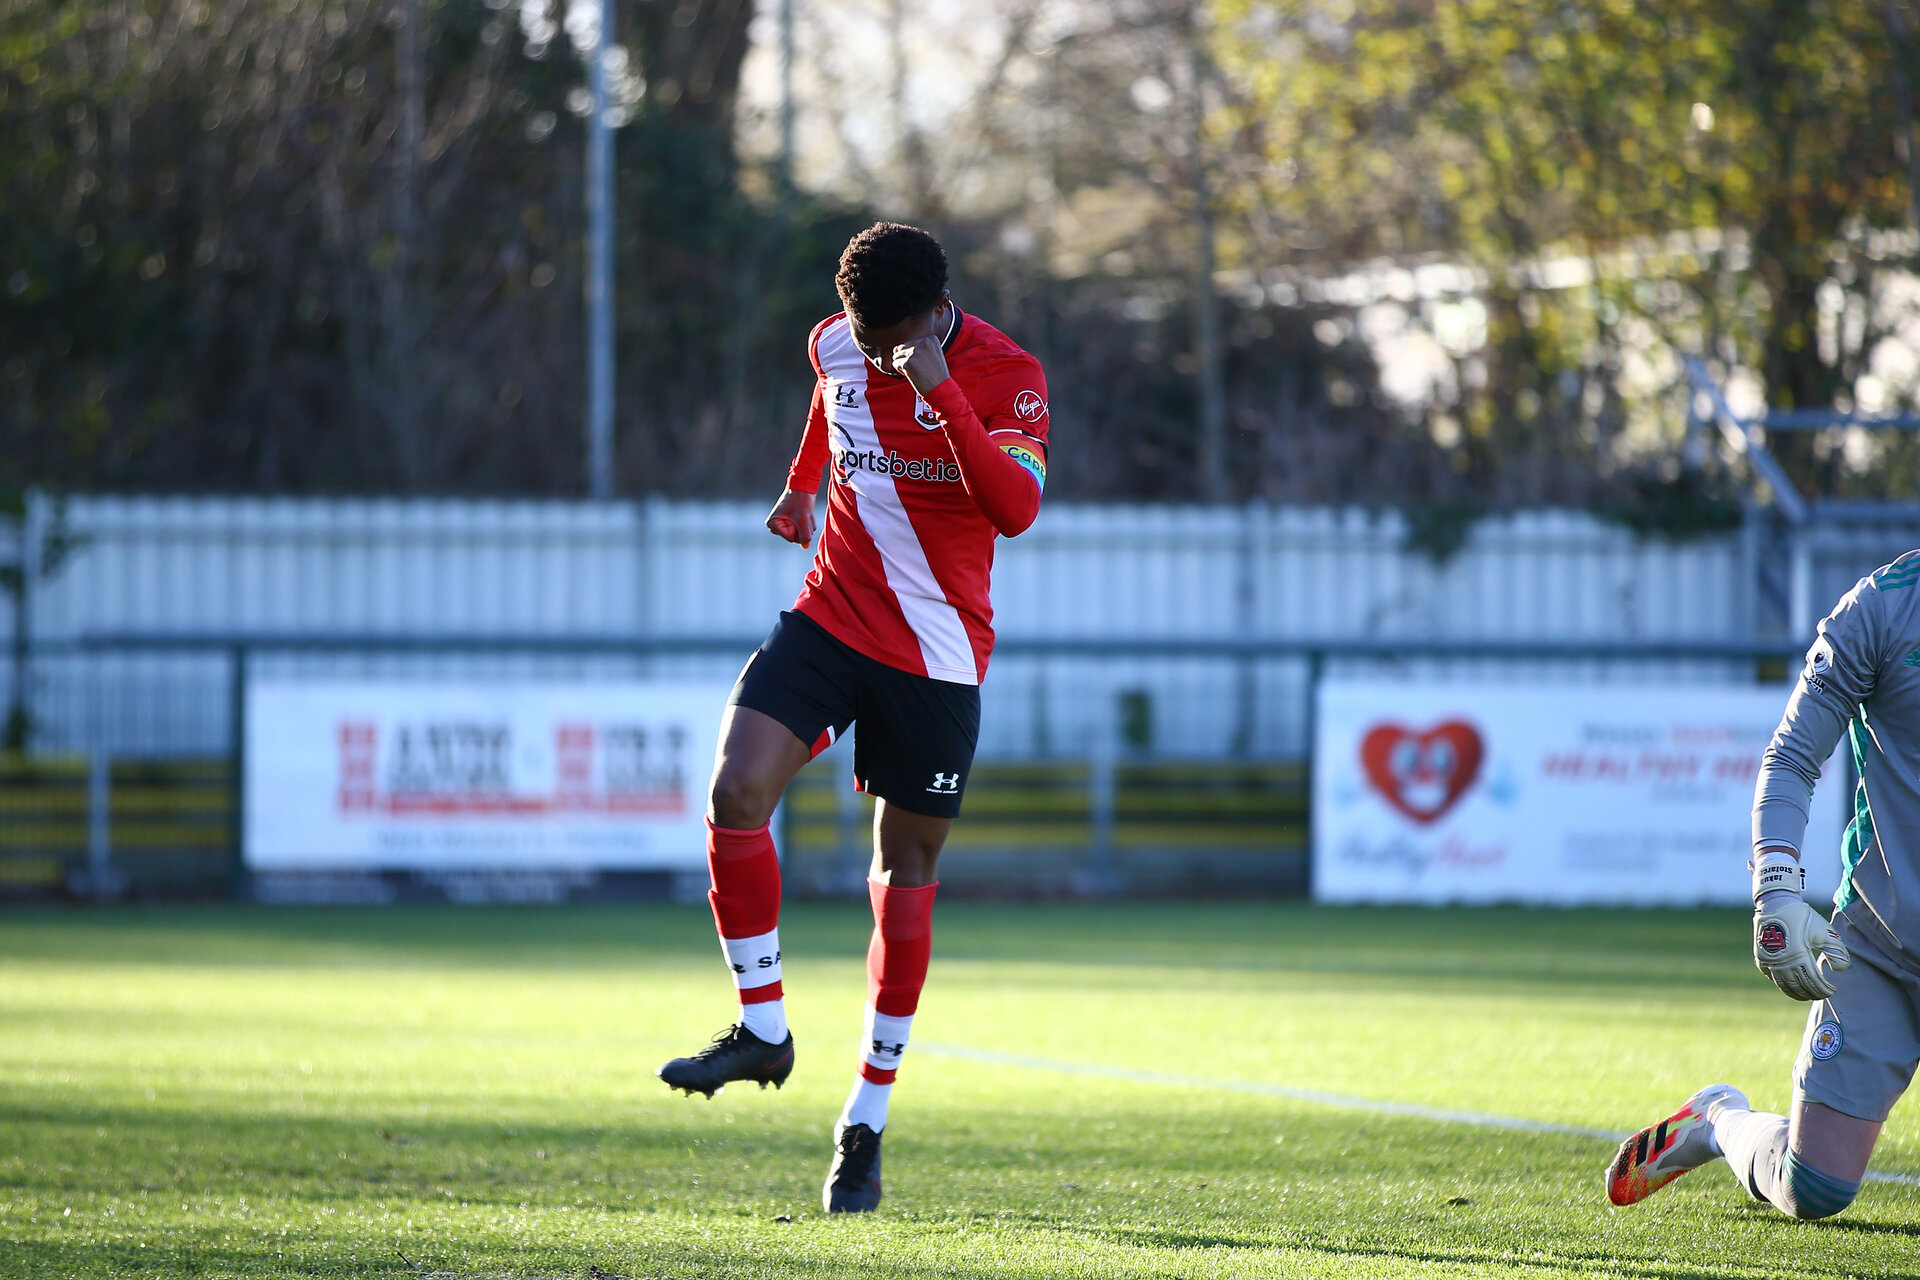 SOUTHAMPTON, ENGLAND - DECEMBER 12: during the Premier League 2 match between Southampton B Team and Leicester City at Snows Stadium on December 12, 2020 in Southampton, England. (Photo by Isabelle Field/Southampton FC via Getty Images)